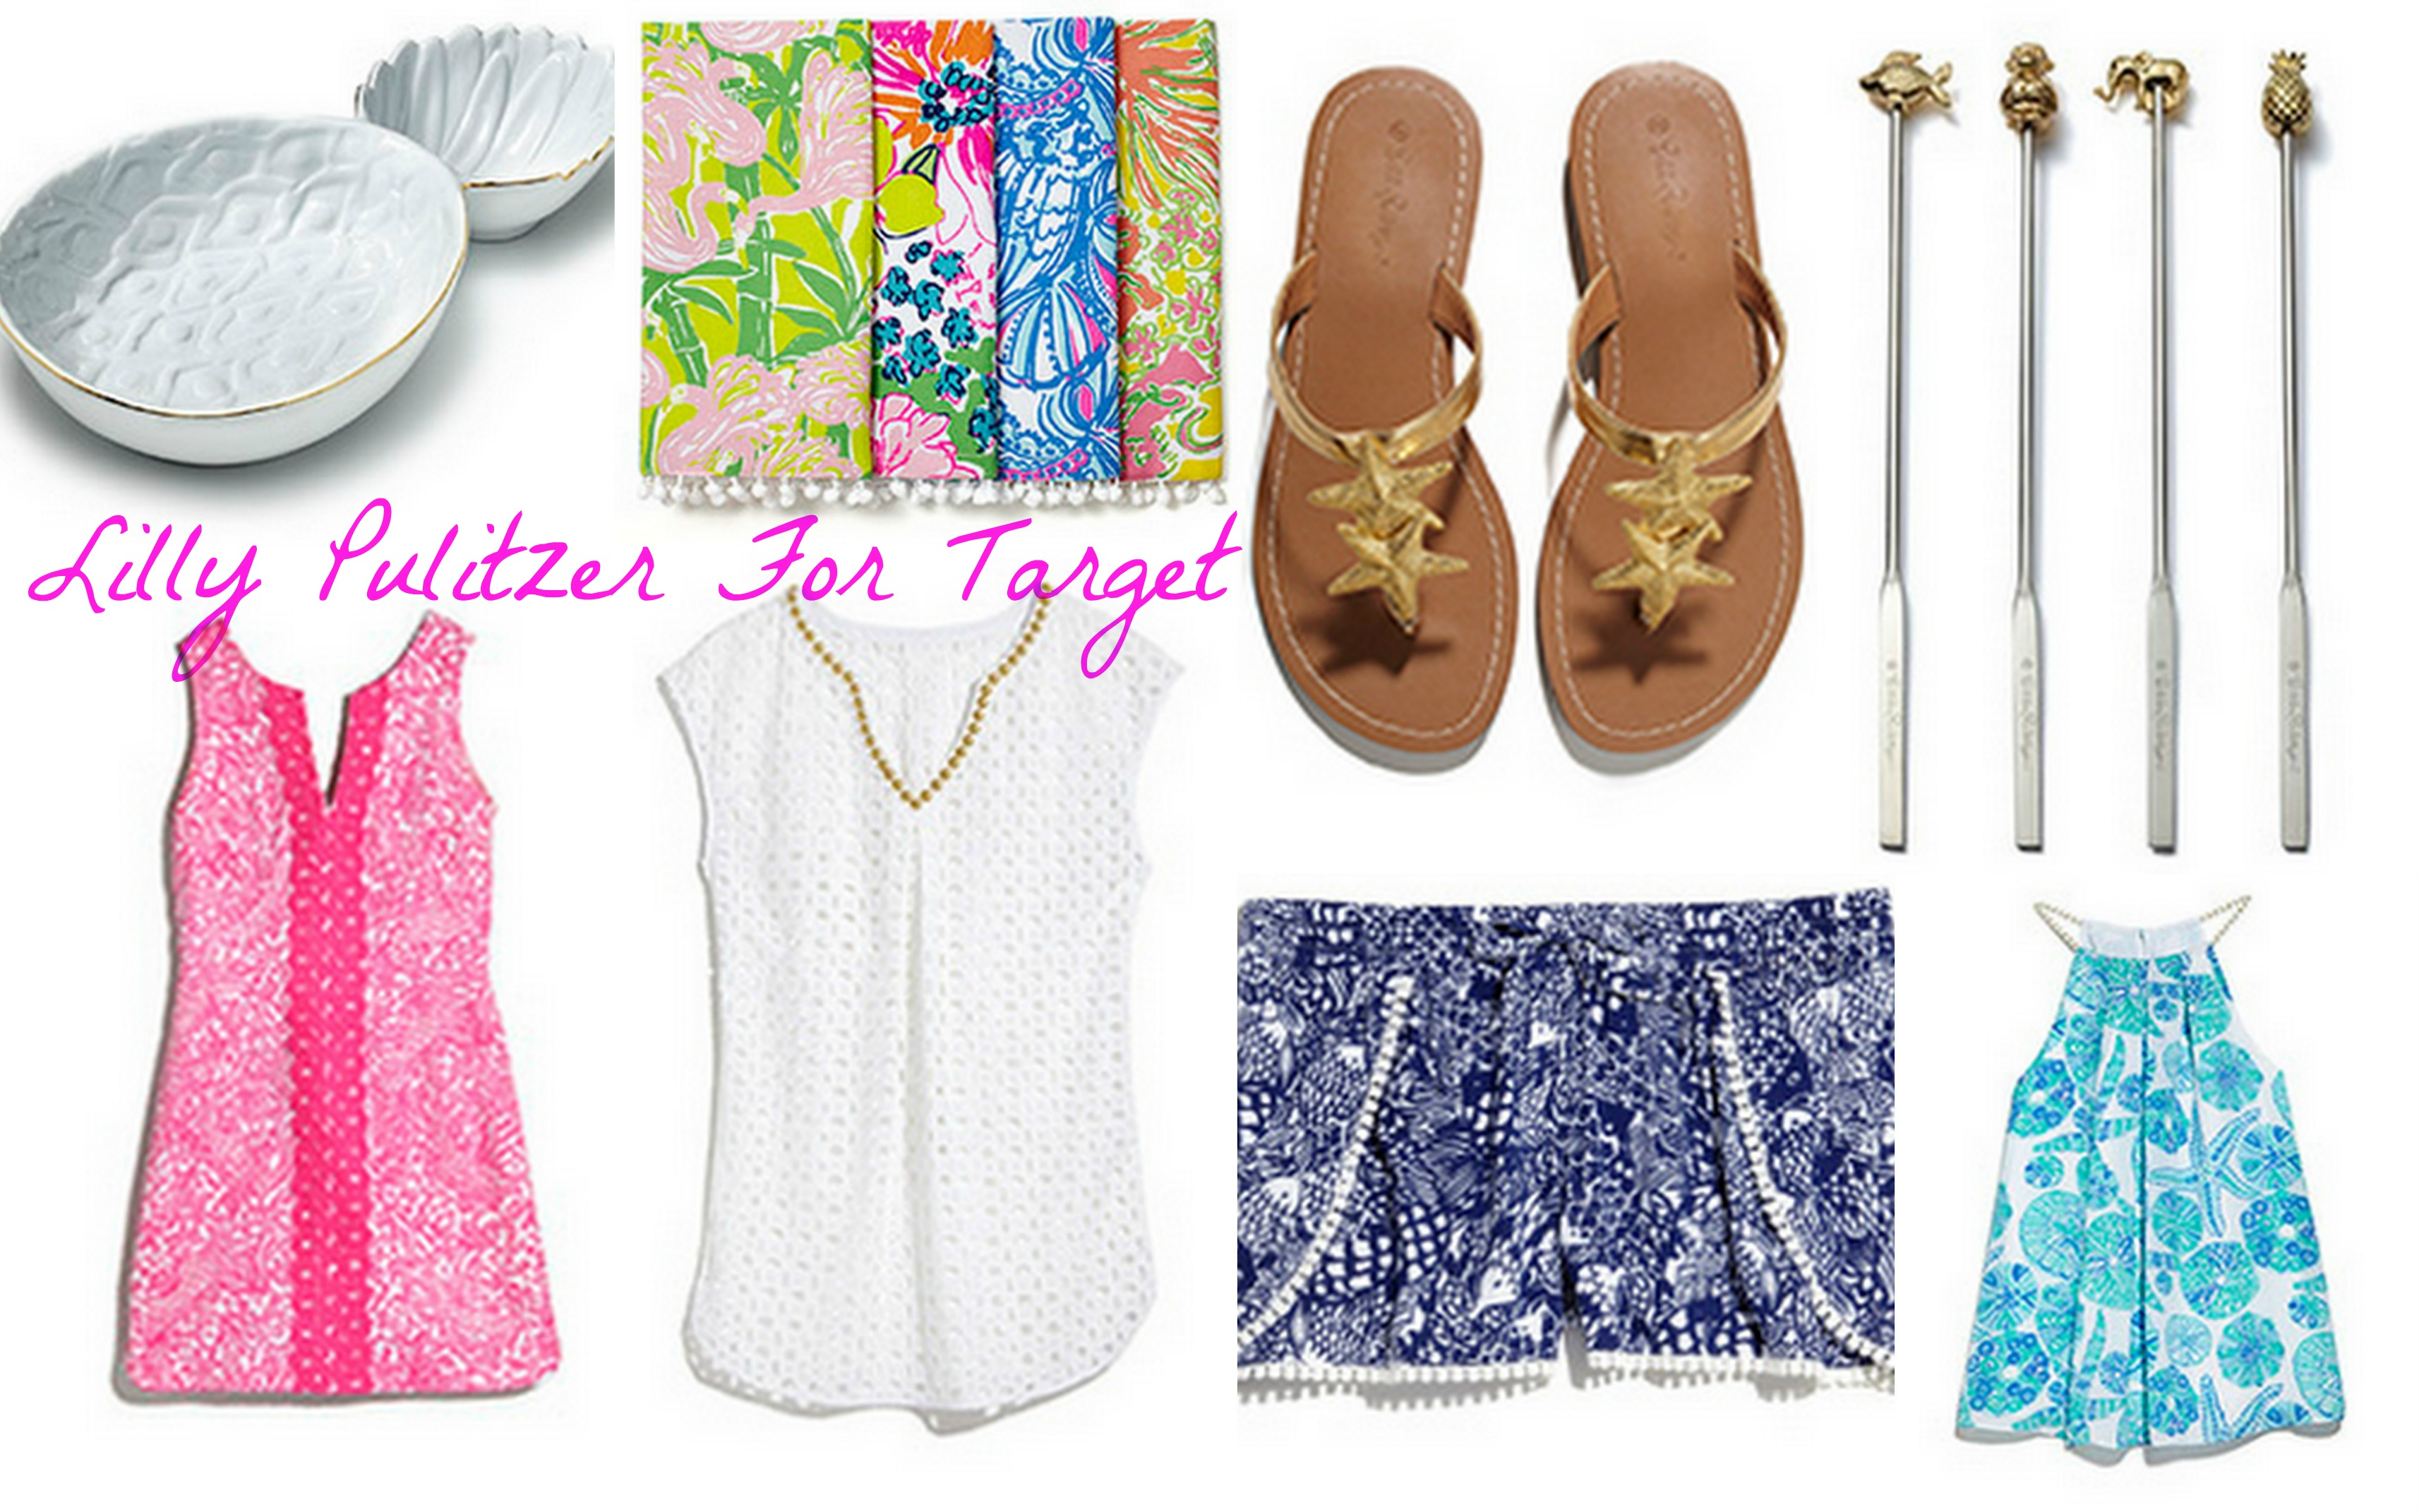 Lilly Pulitzer For Target Boston Chic Party